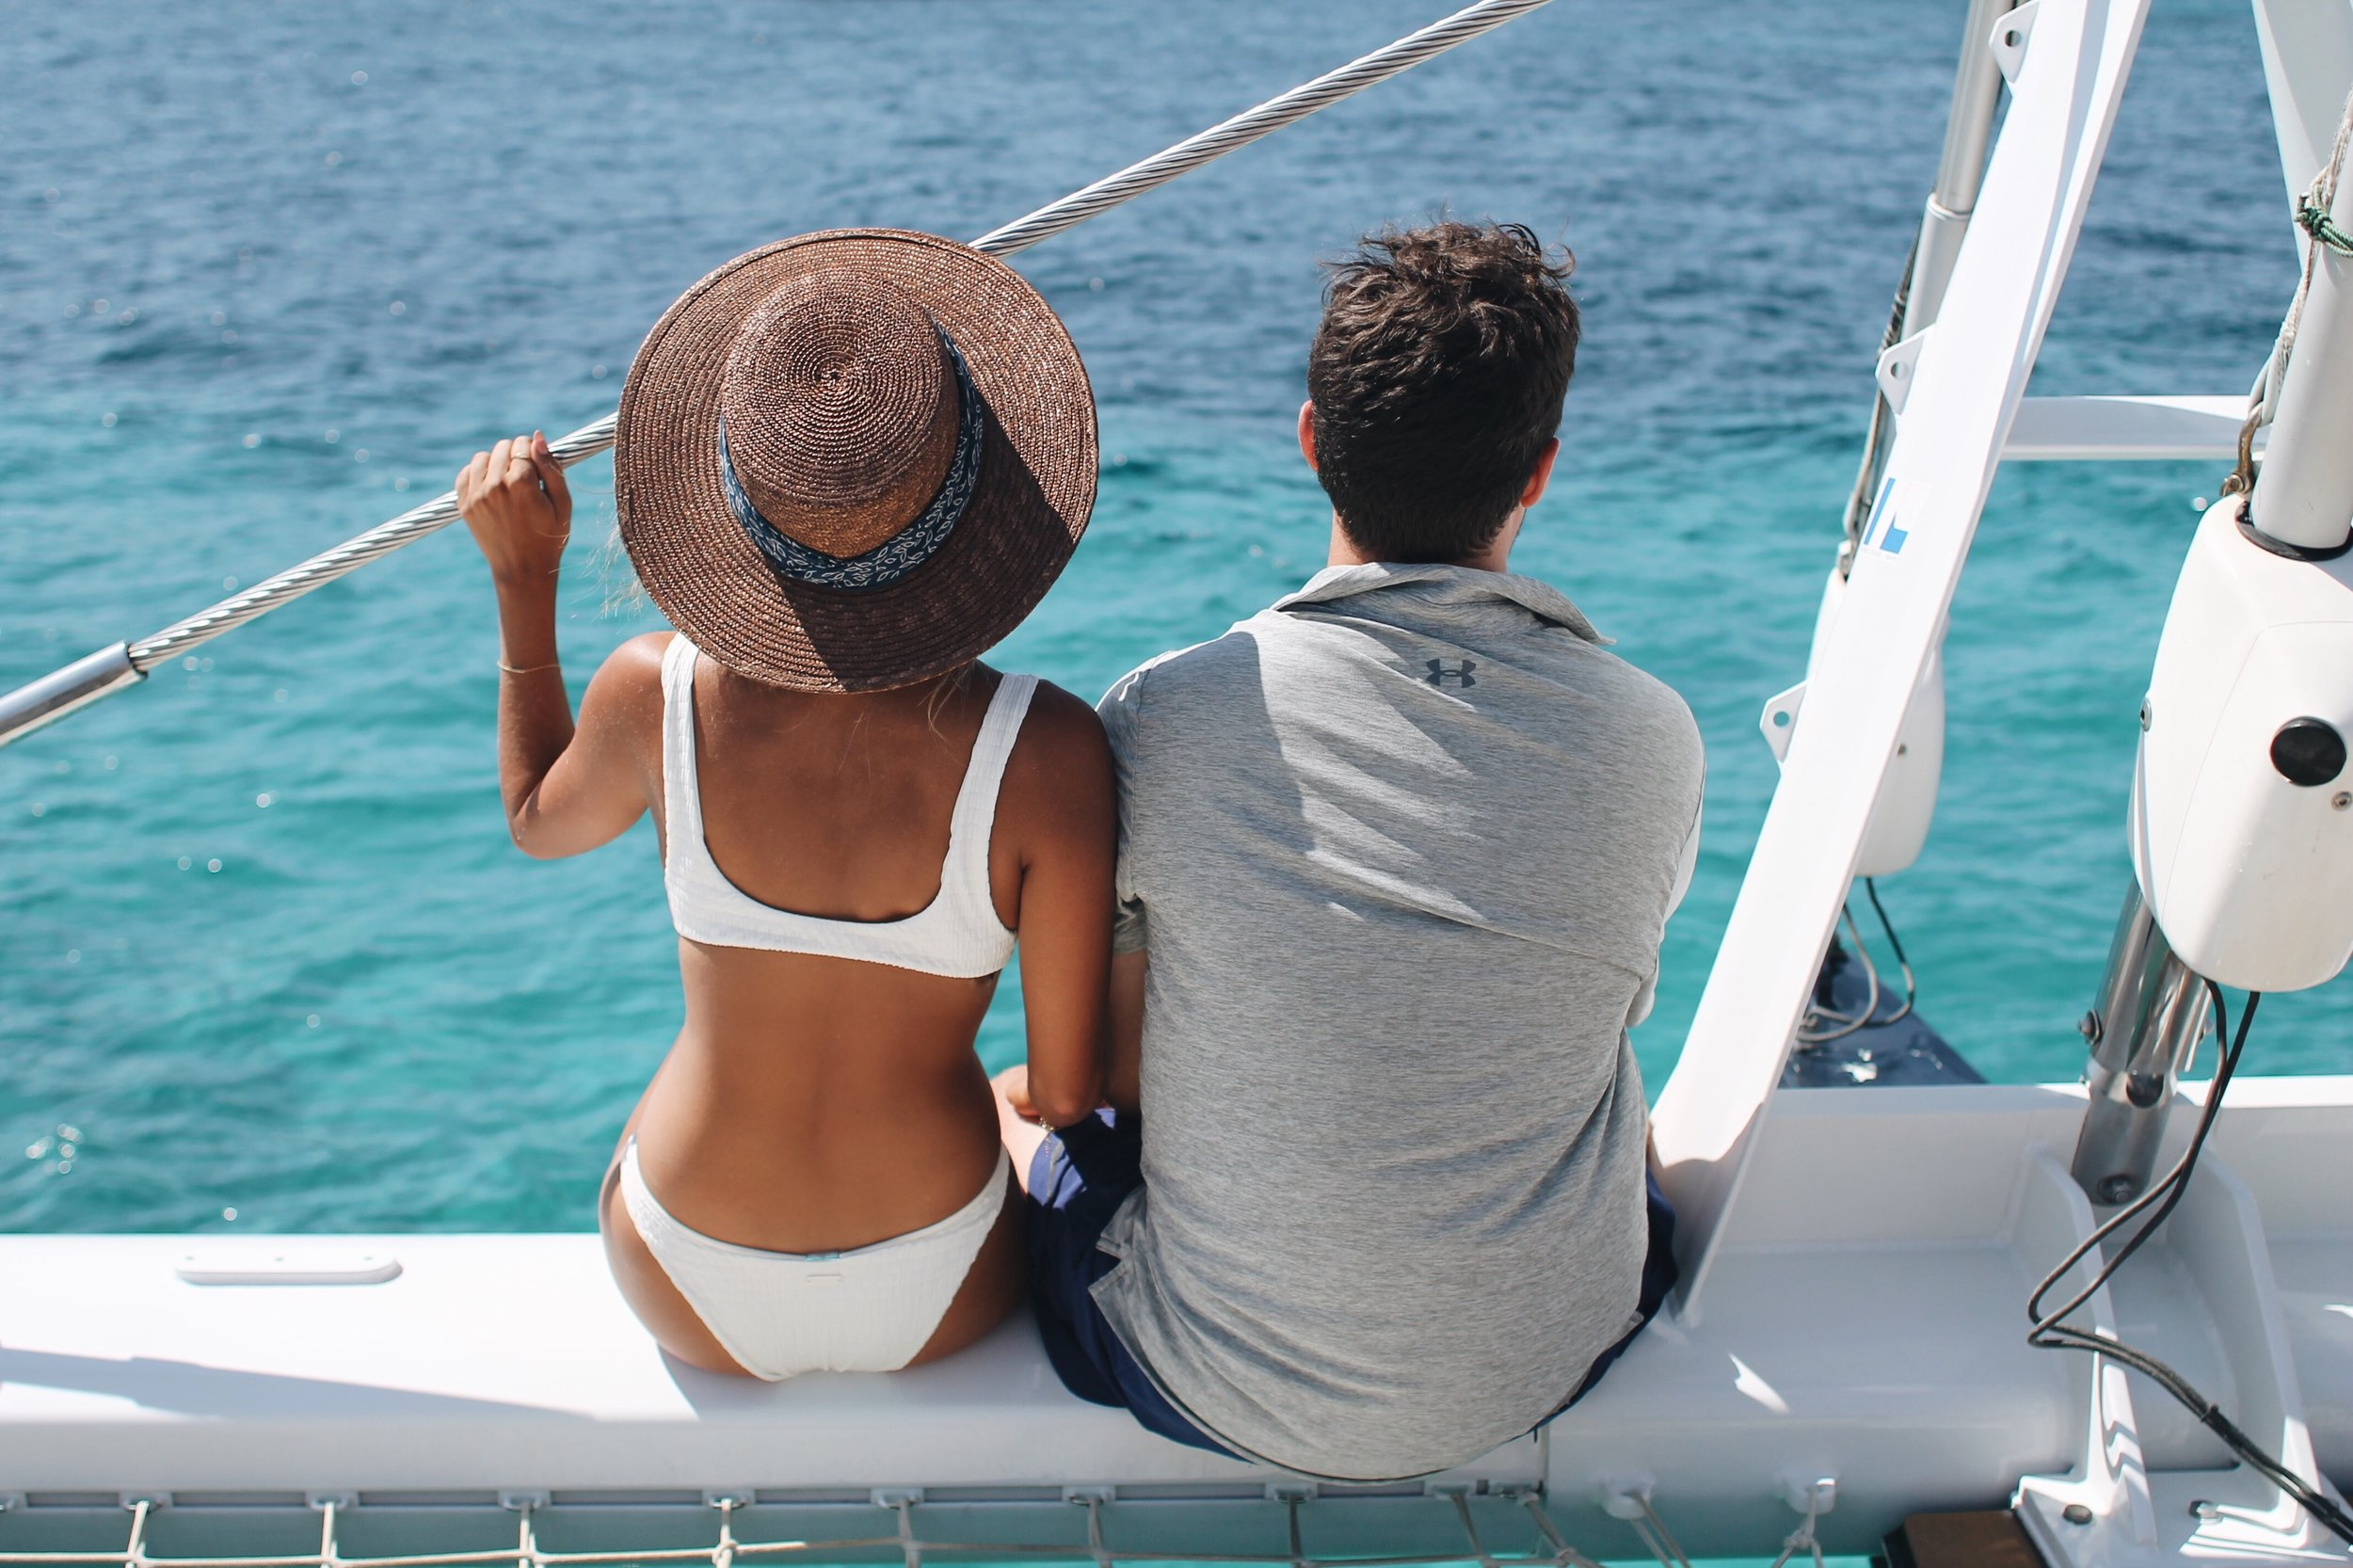 Ashley Torres Everyday Pursuits and fiance, Triangl Bikini in French Riviera